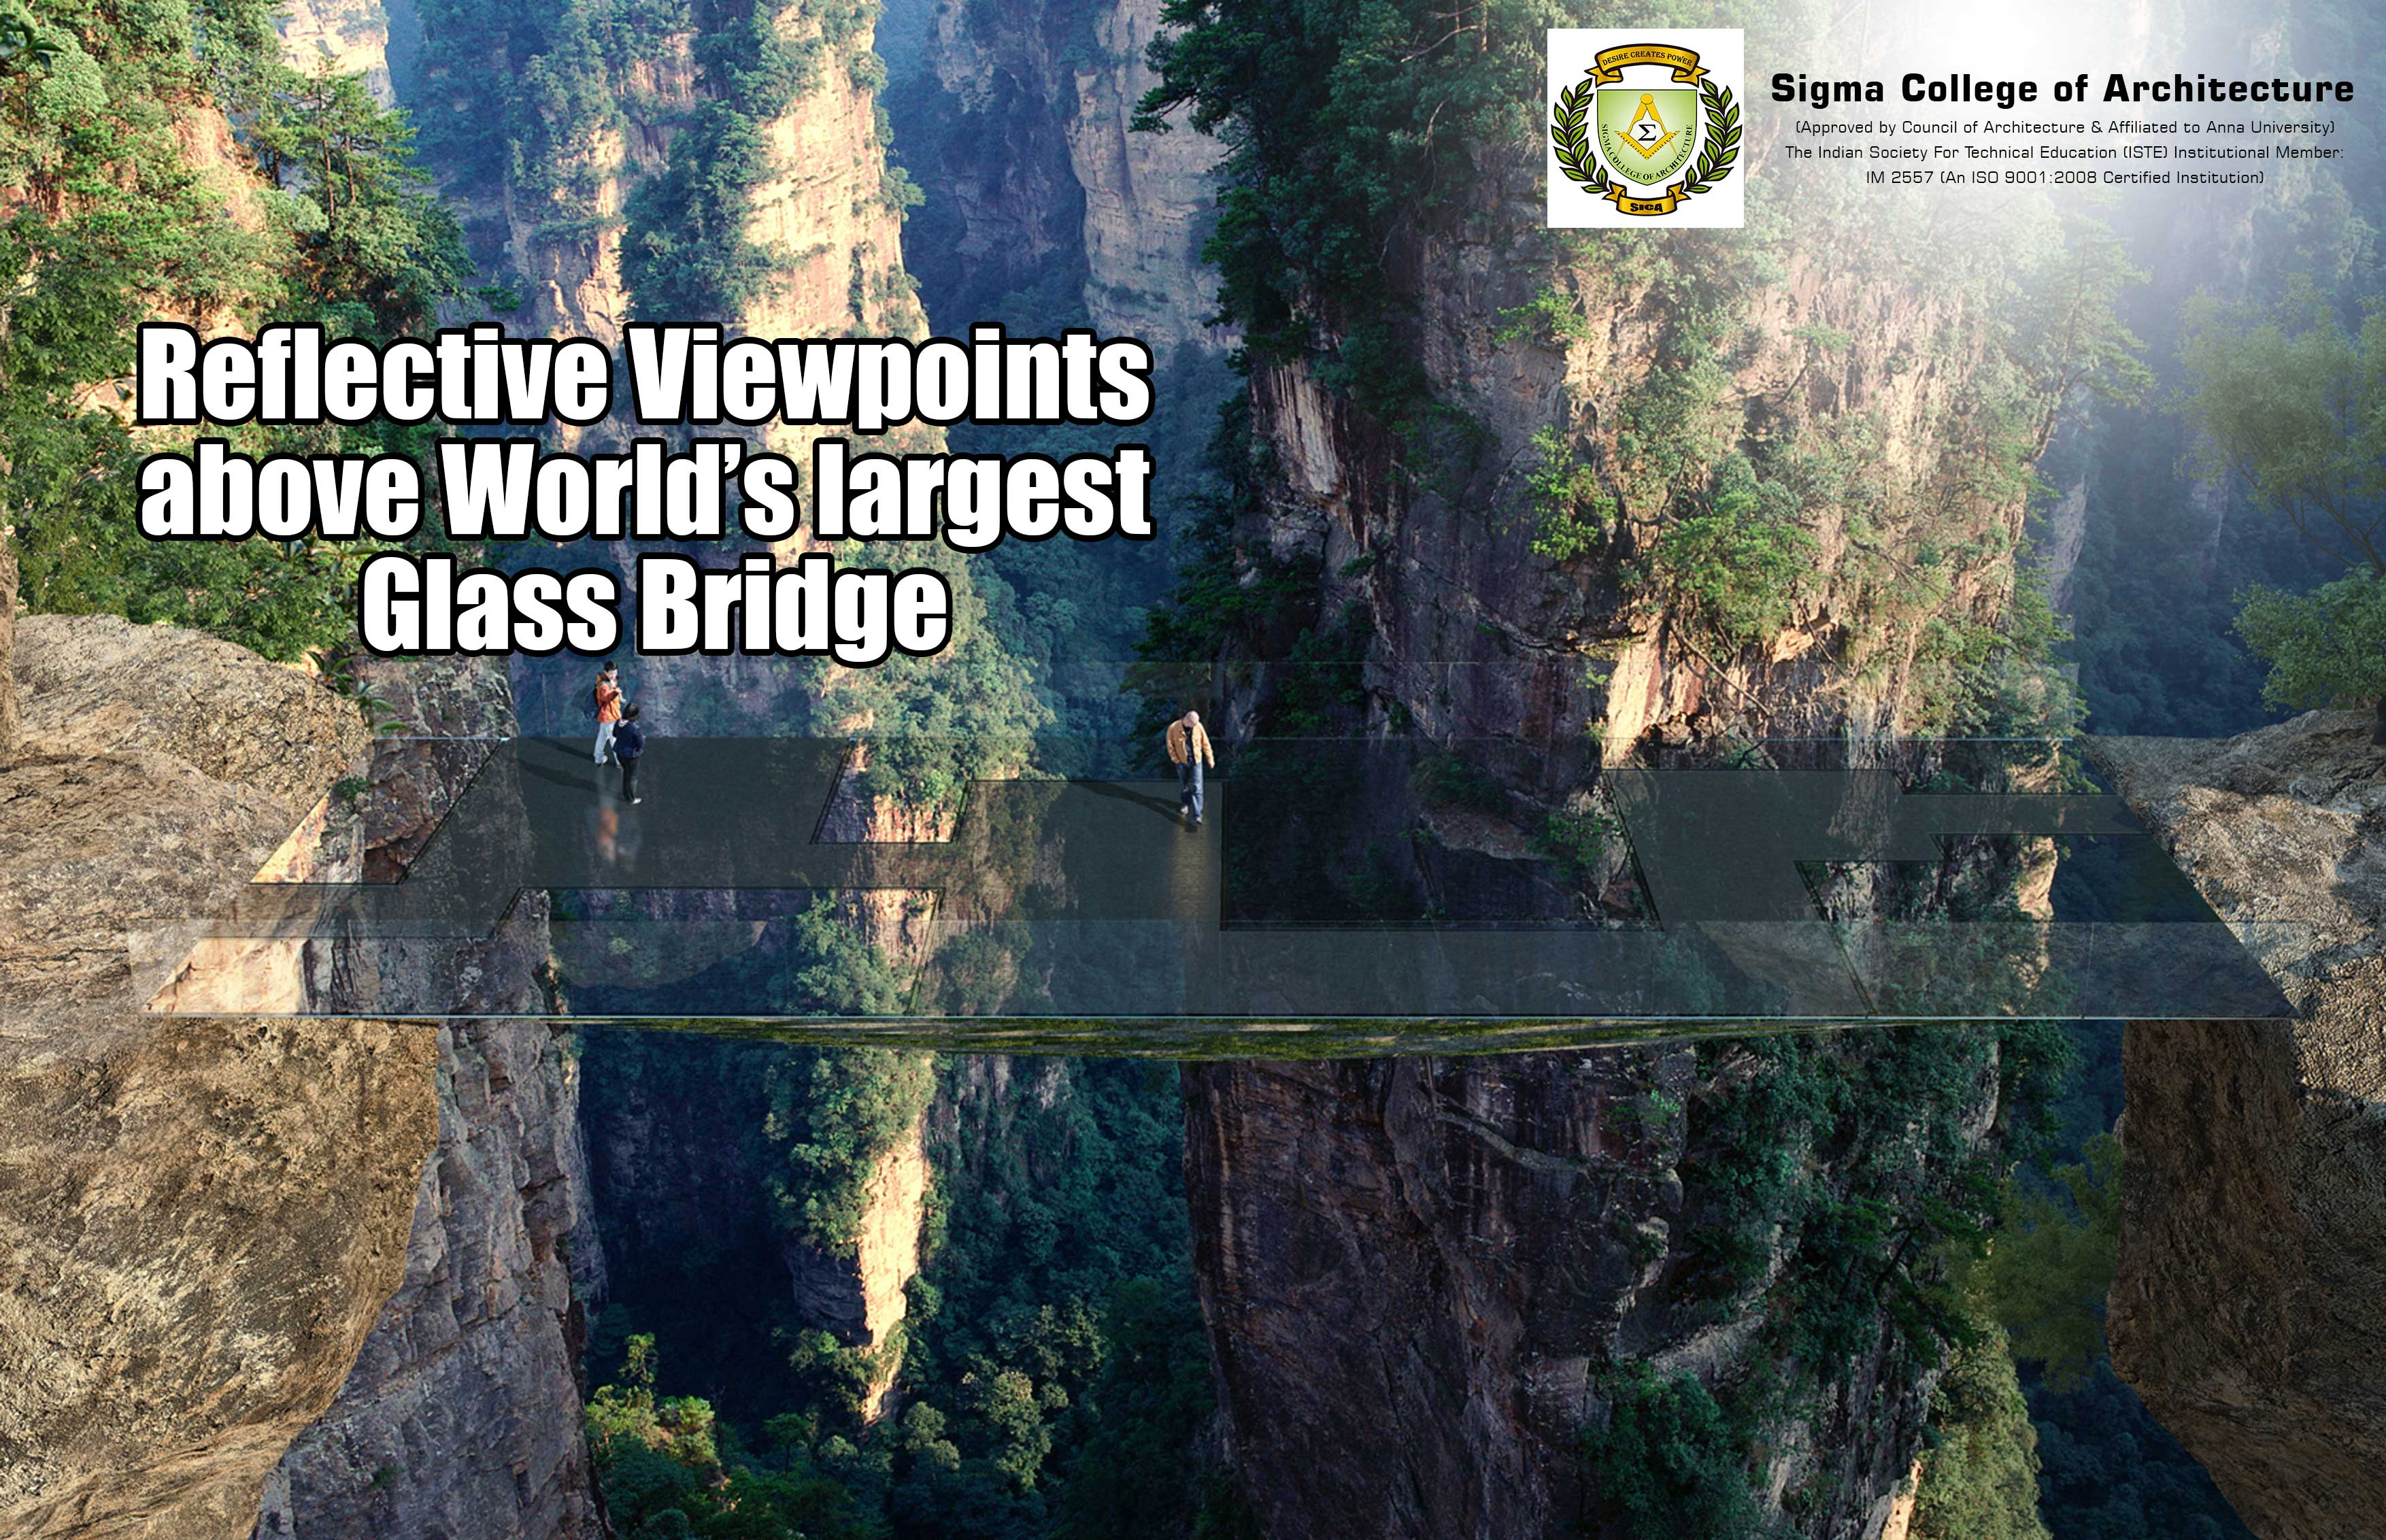 Reflective Viewpoints above World's largest Glass Bridge